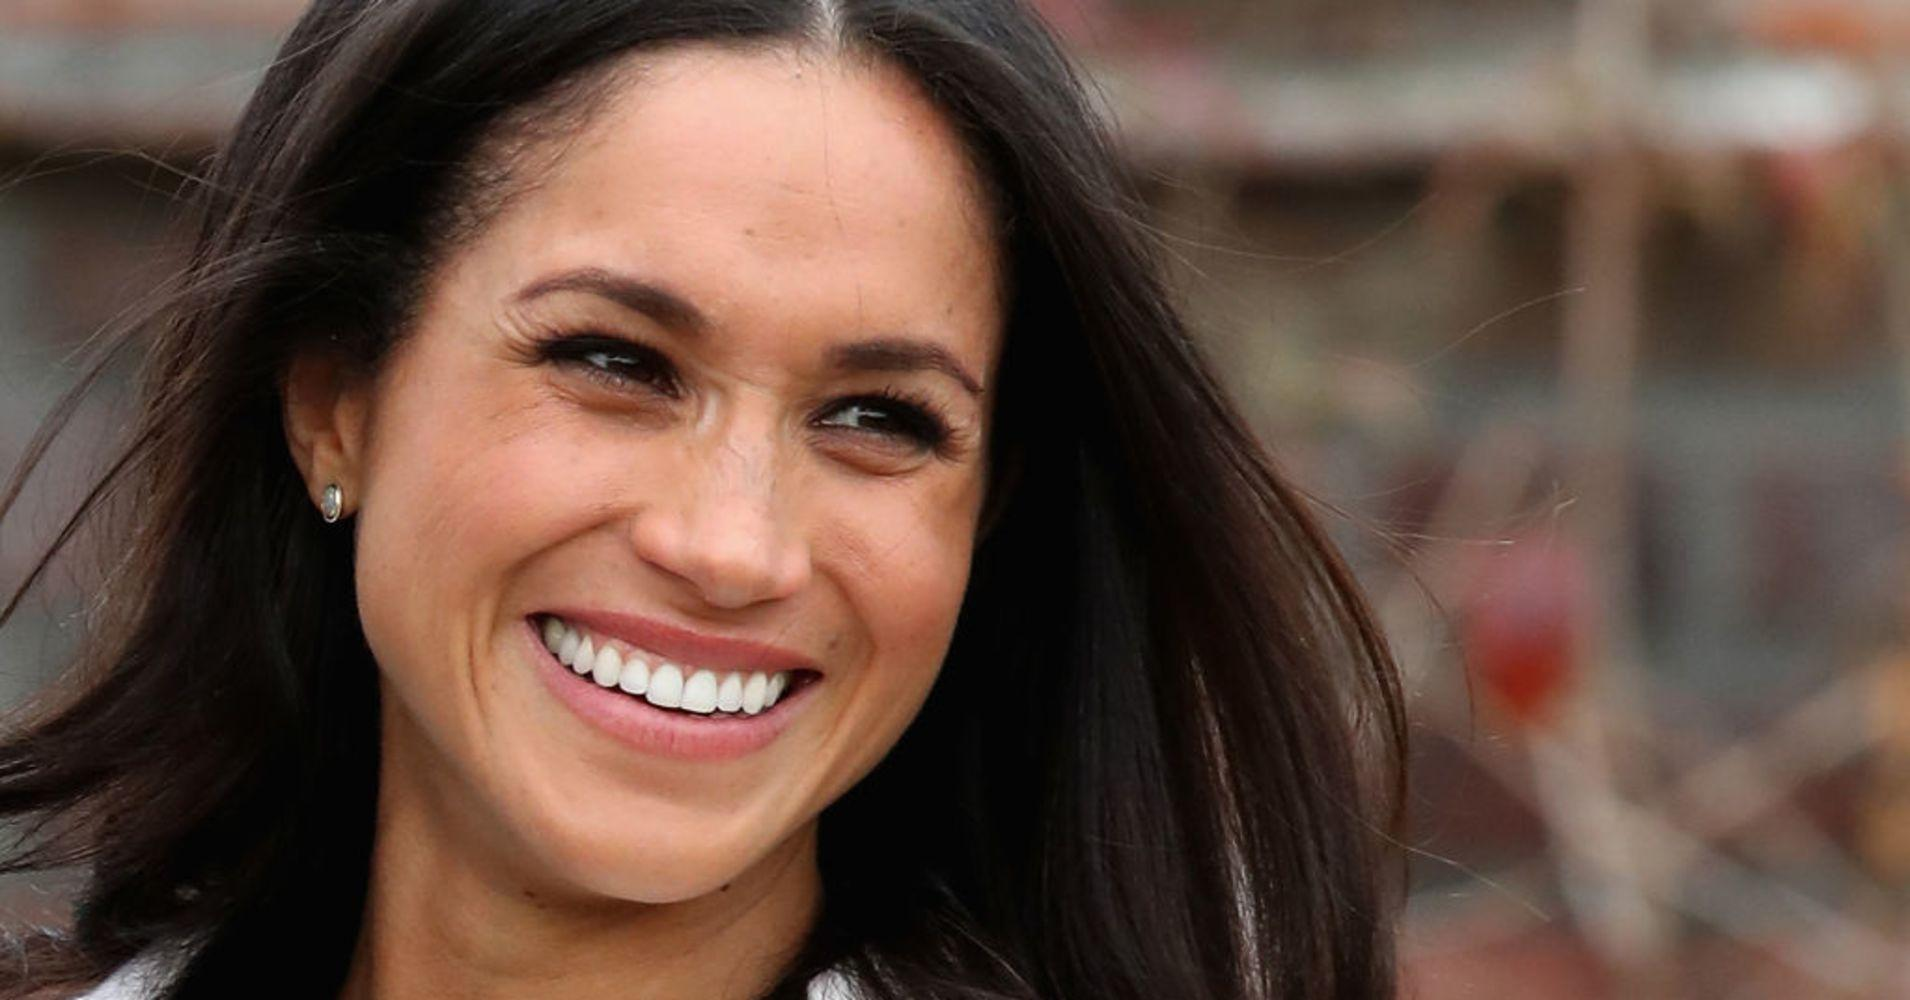 Meghan Markle Called A 'Fat Lady' By Another Woman - Check Out Her Hilarious Reaction!